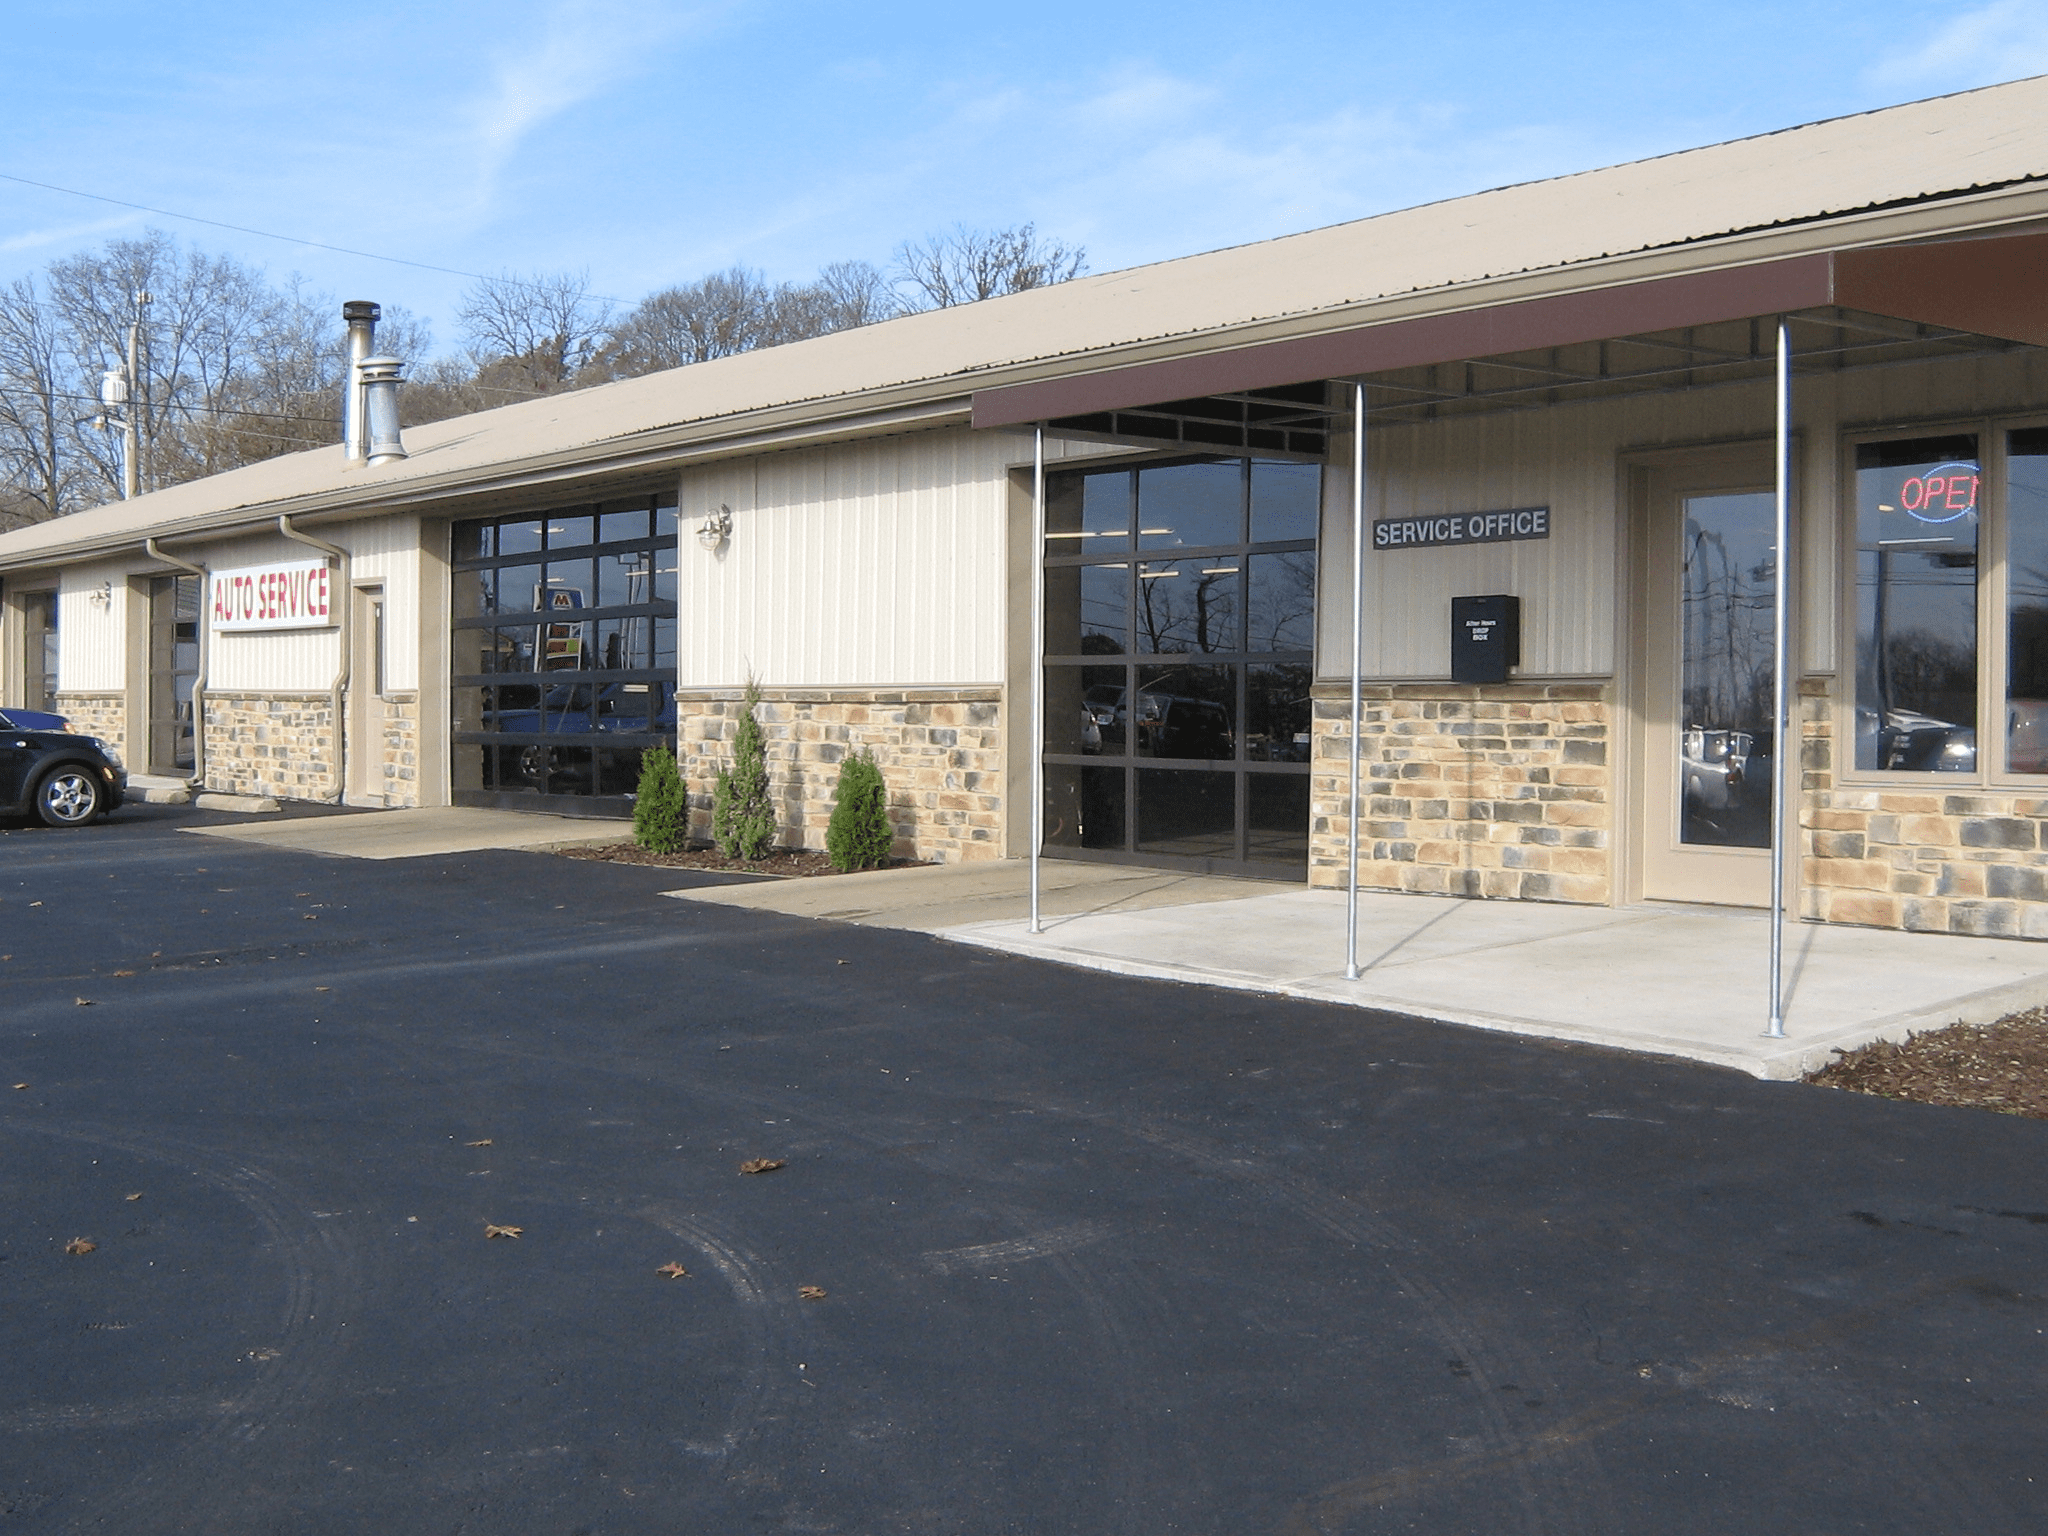 Foreign Exchange, 2046 E. State Route 73, Waynesville, OH 45068